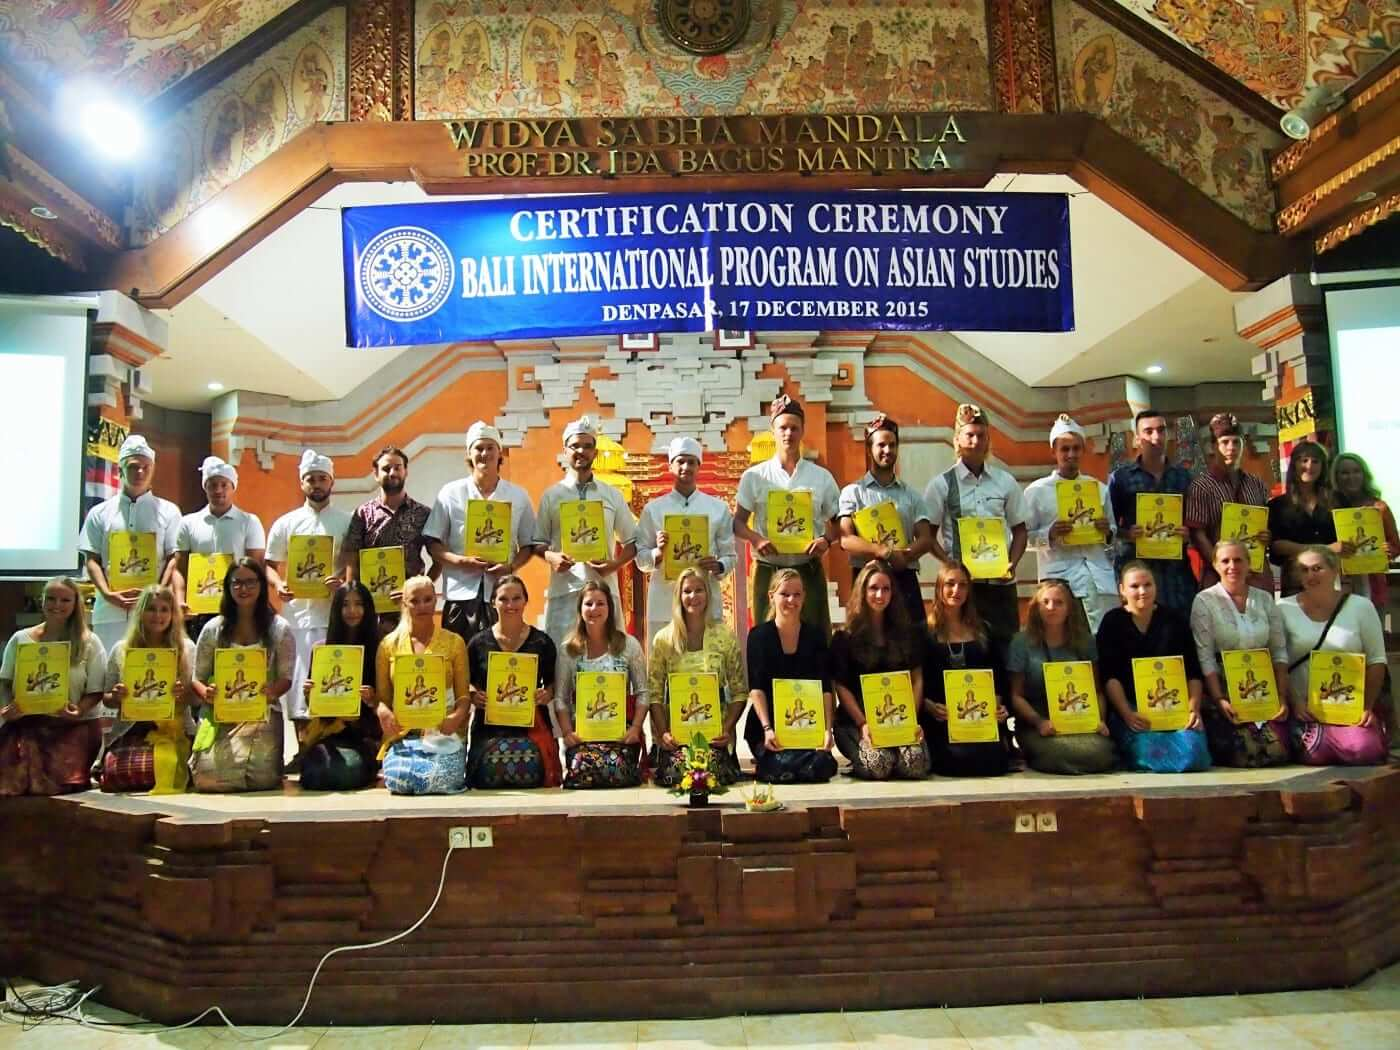 certification ceremony bali international program on asian studies